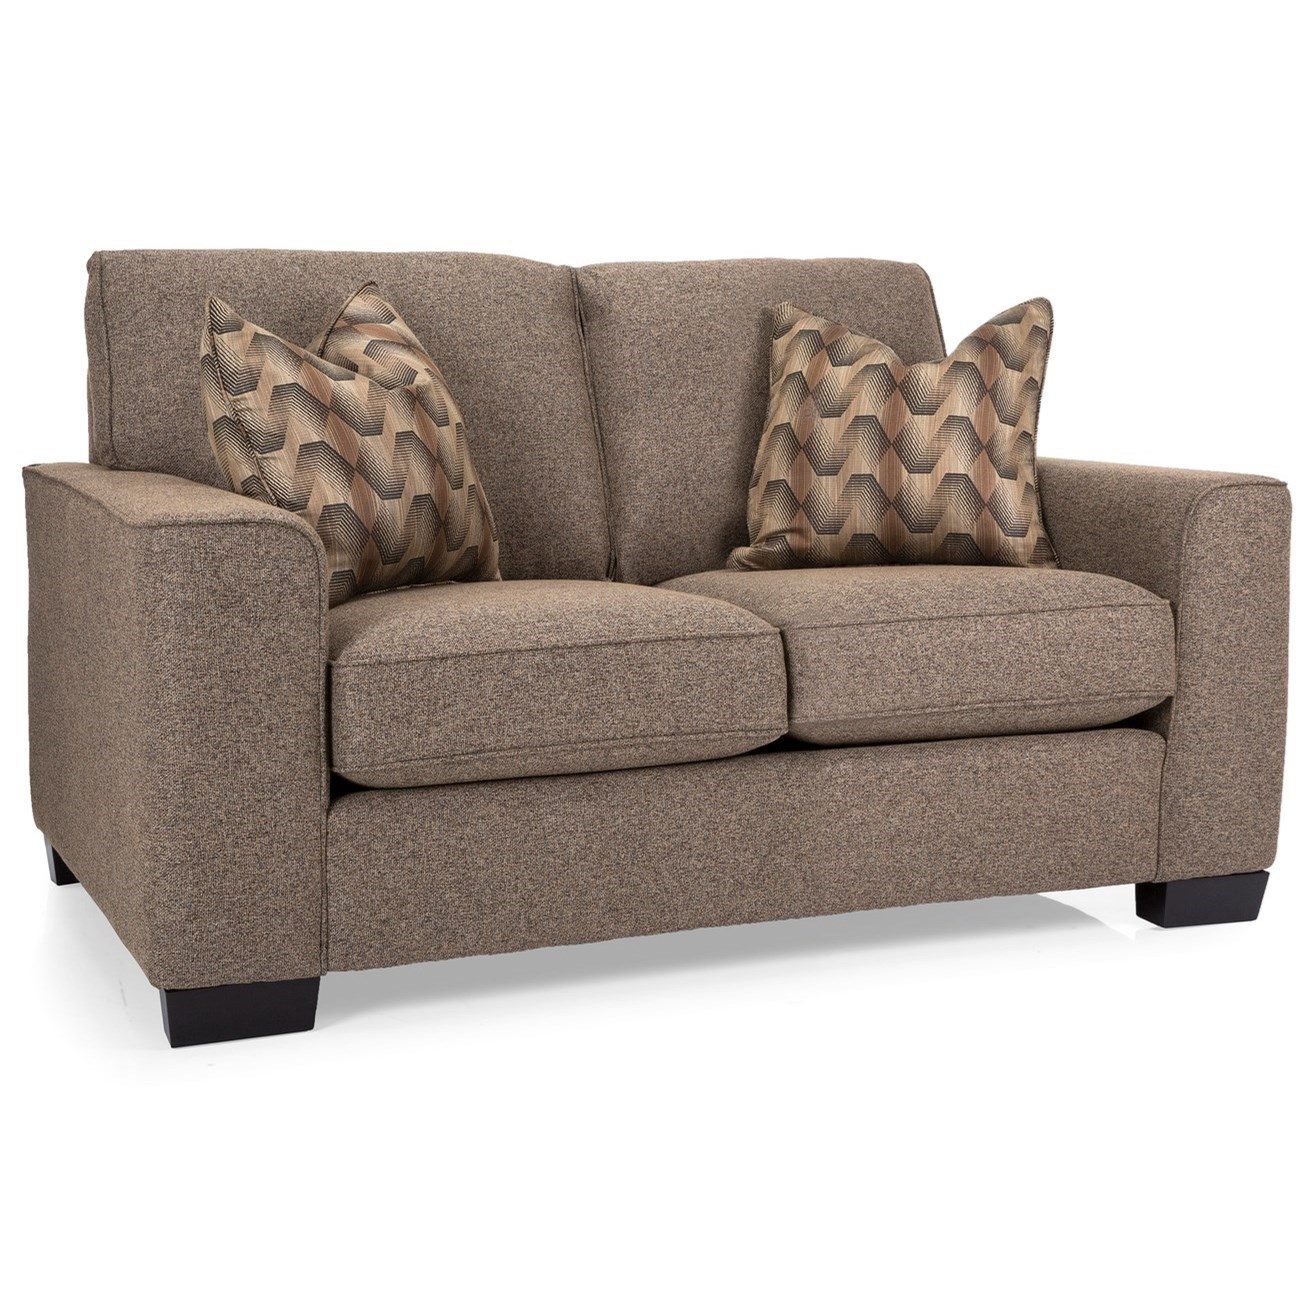 2483 Loveseat by Decor-Rest at Rooms for Less